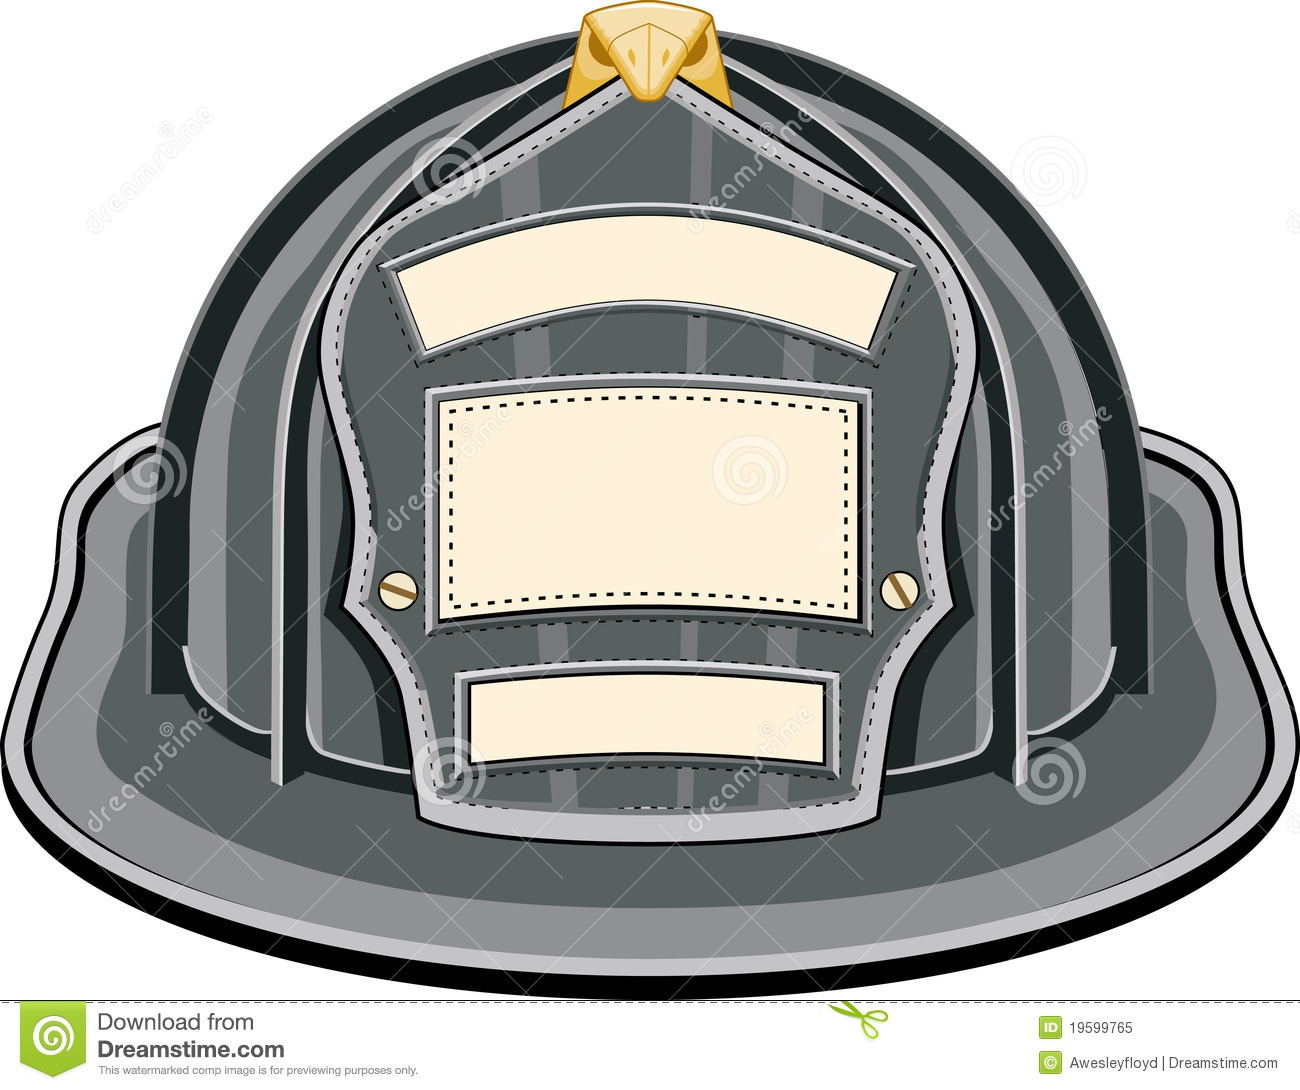 Fire Helmet Shield Clipart - Clipart Kid